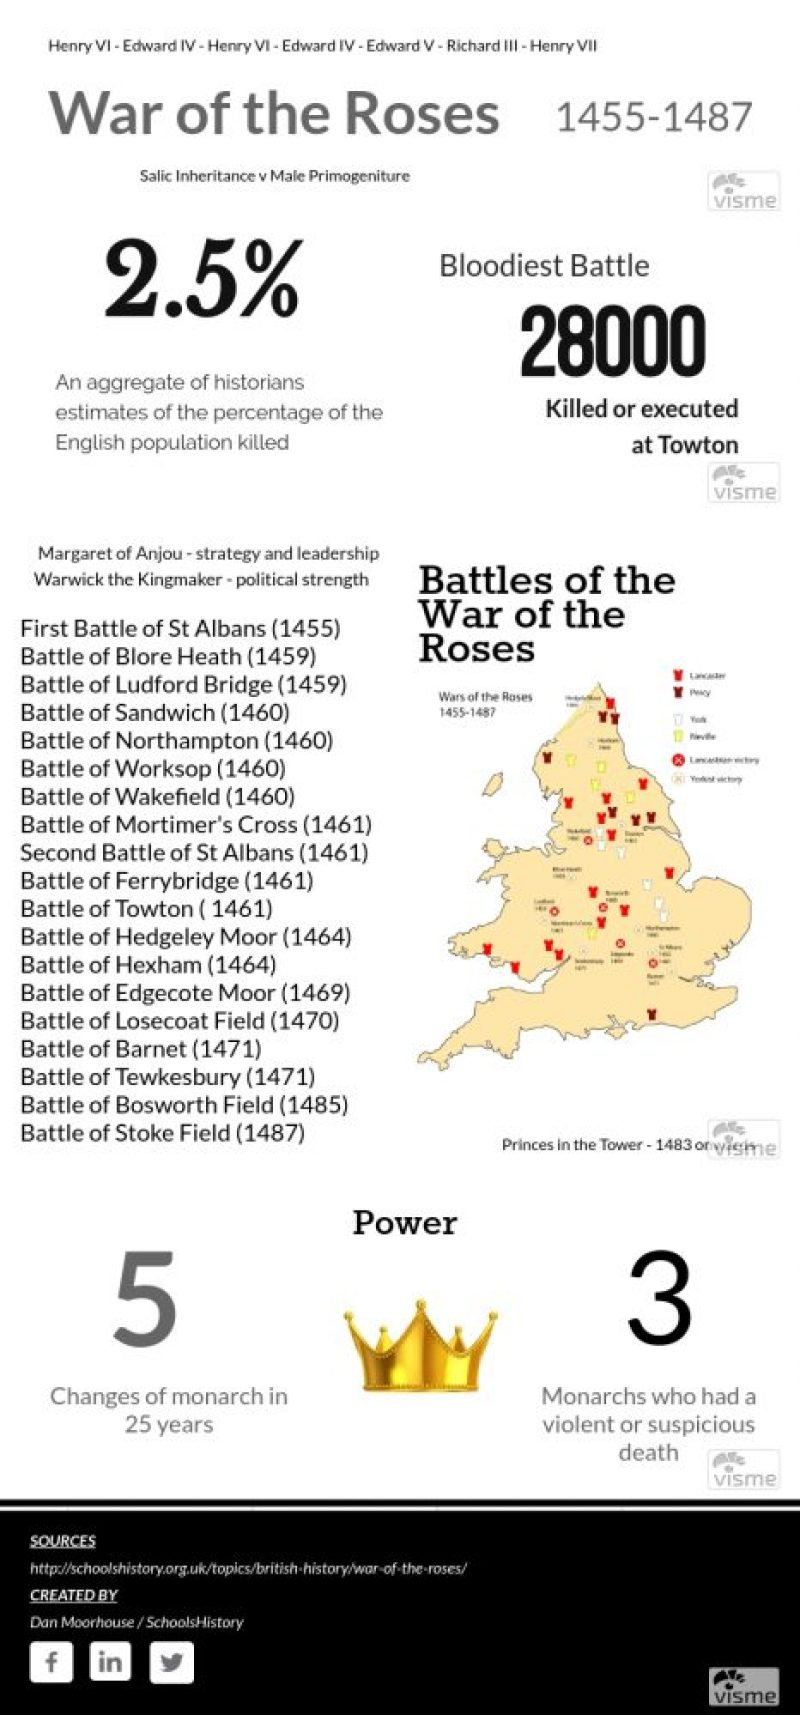 What happened in the War of the Roses?